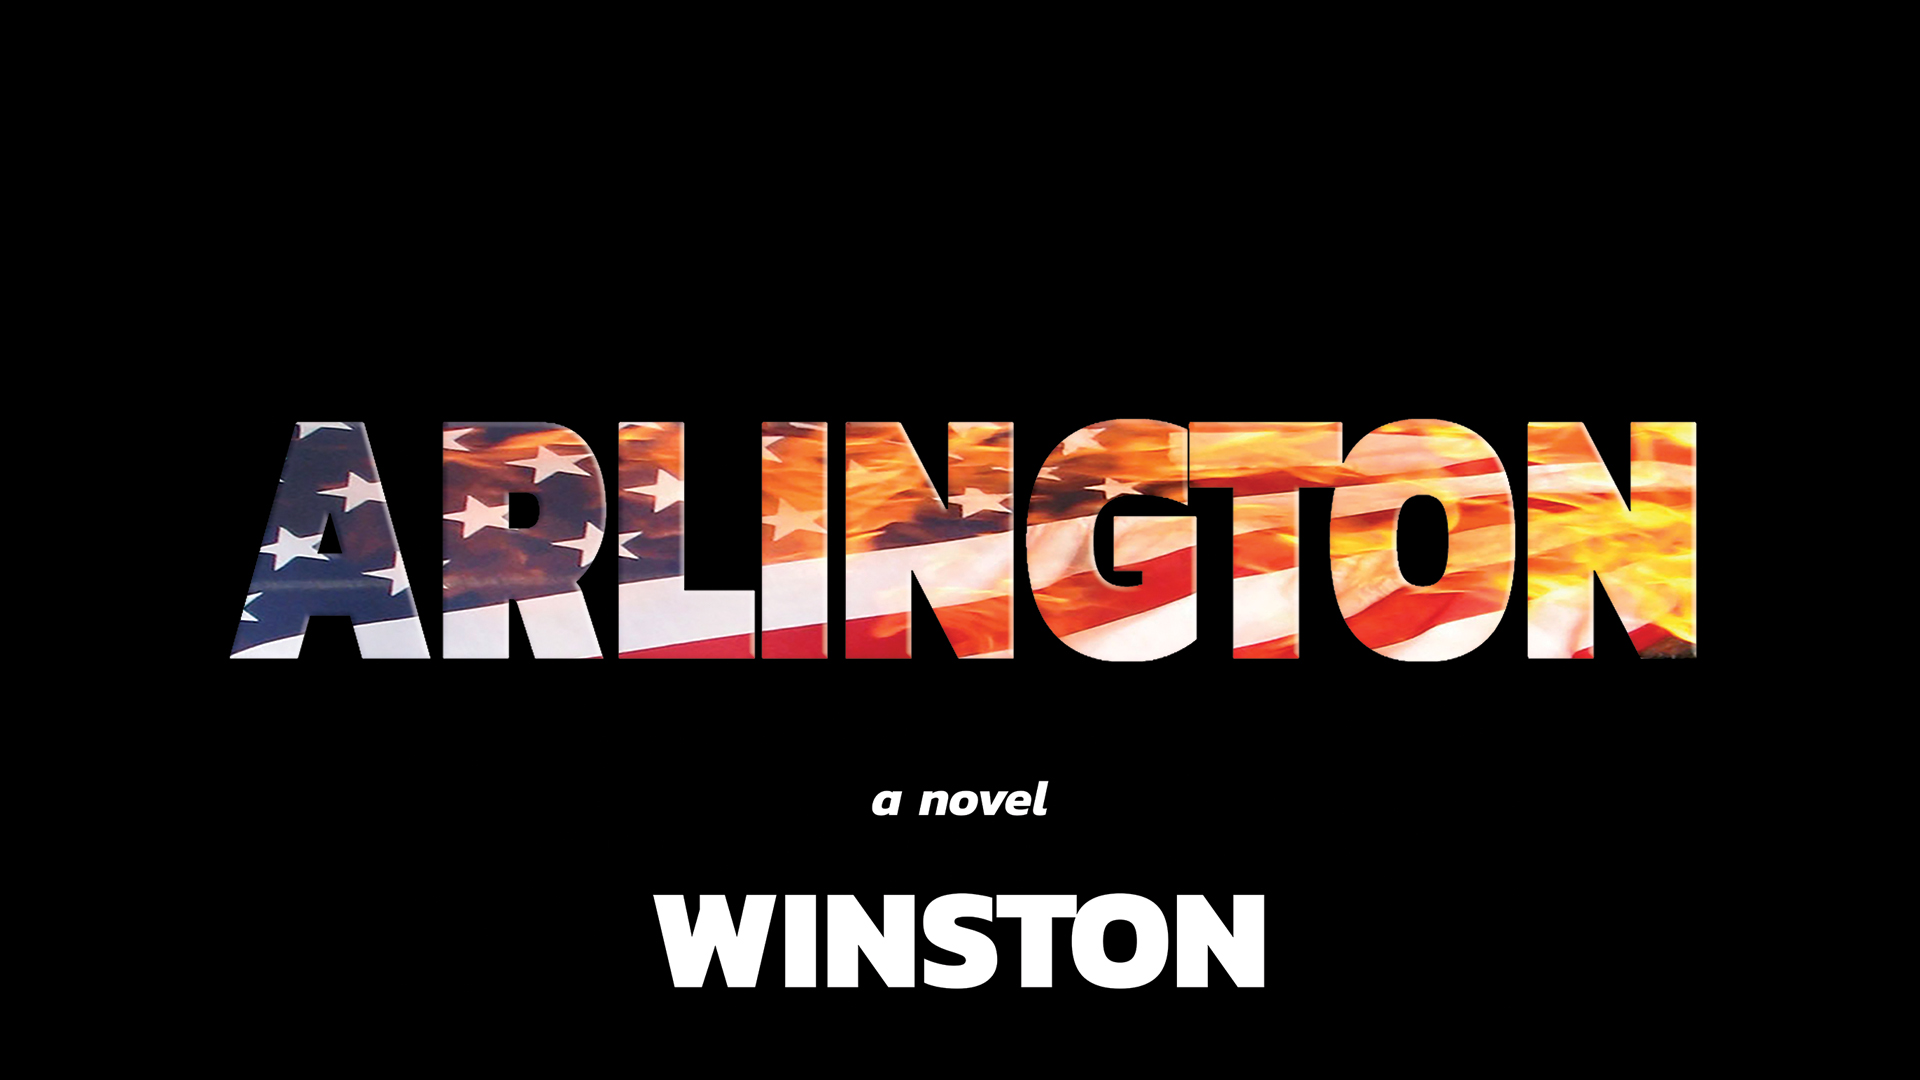 A Book Review: Arlington by Winston